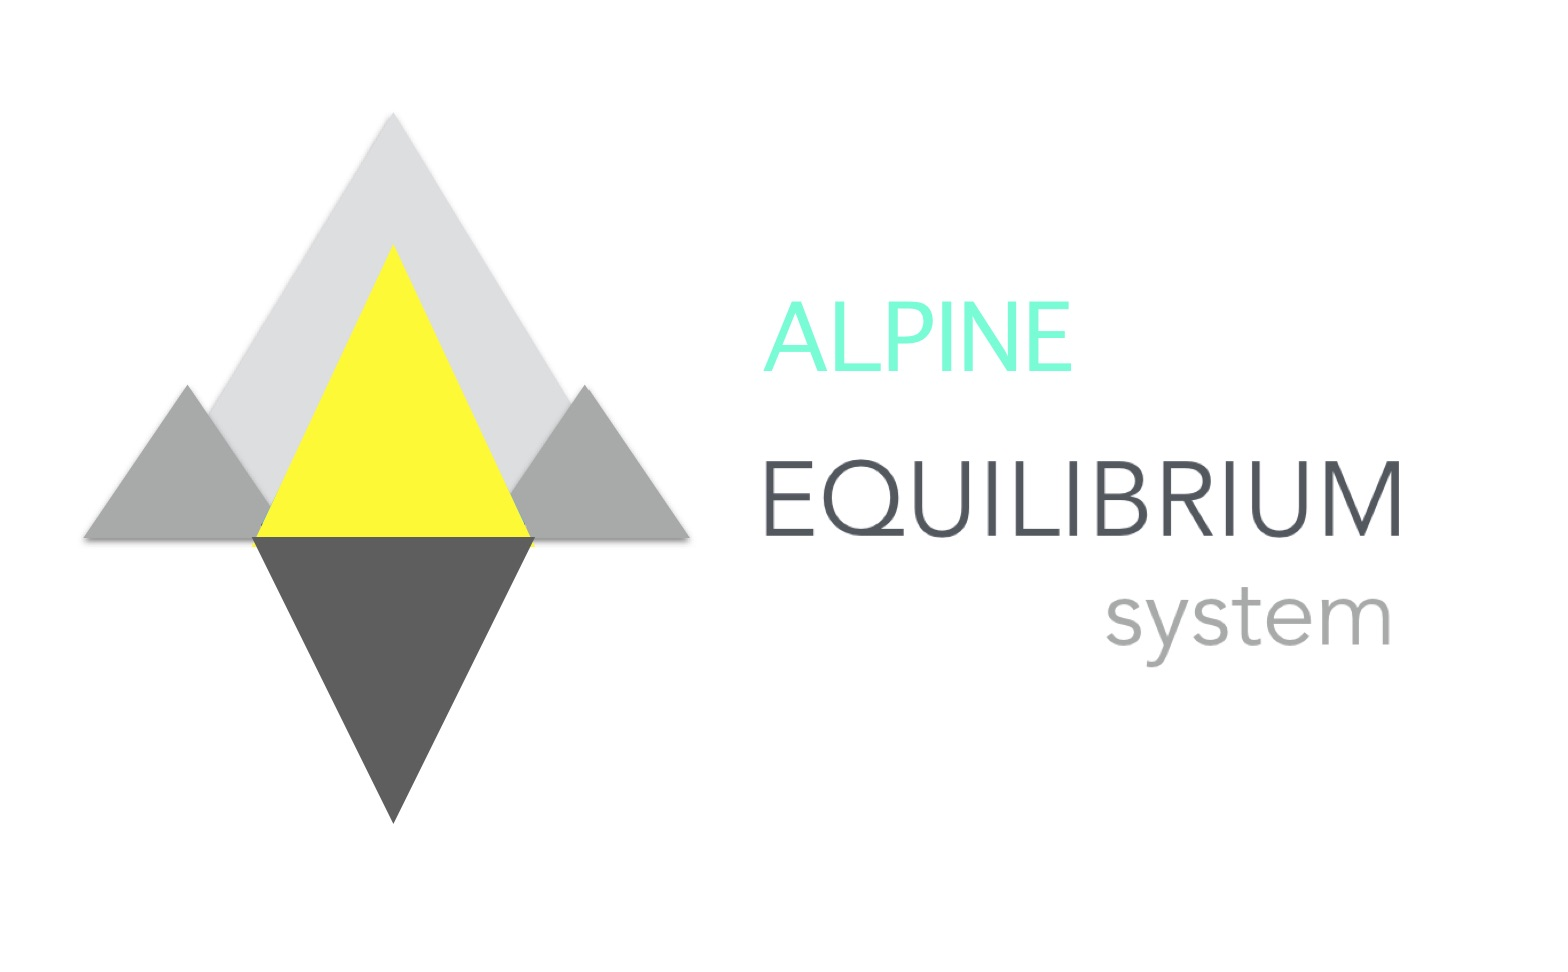 ALPINE EQUILIBRIUM SYSTEM BY TULSON TOLF